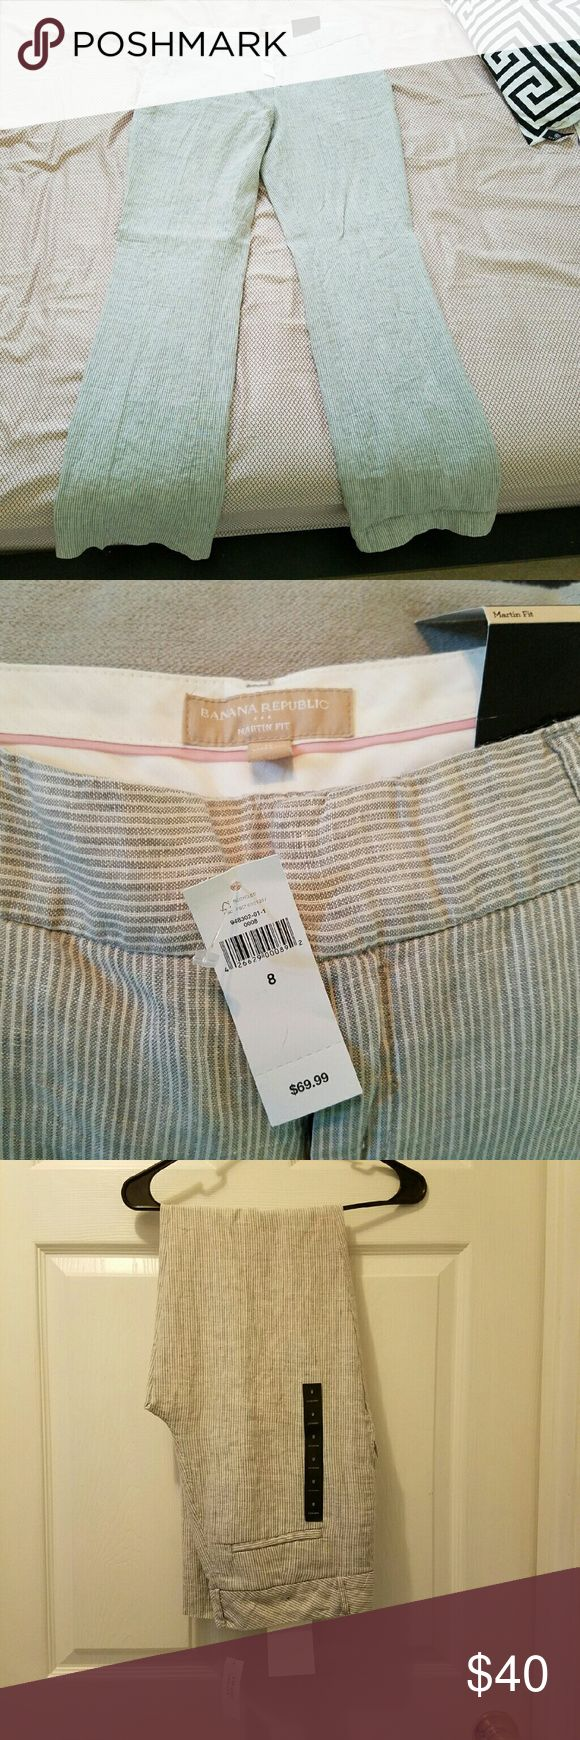 Banana Republic Martin Fit Grey Stripe Linen Pants New with tags! Never worn, light grey striped linen pants. Perfect for summer! Martin fit. Banana Republic Pants Trousers